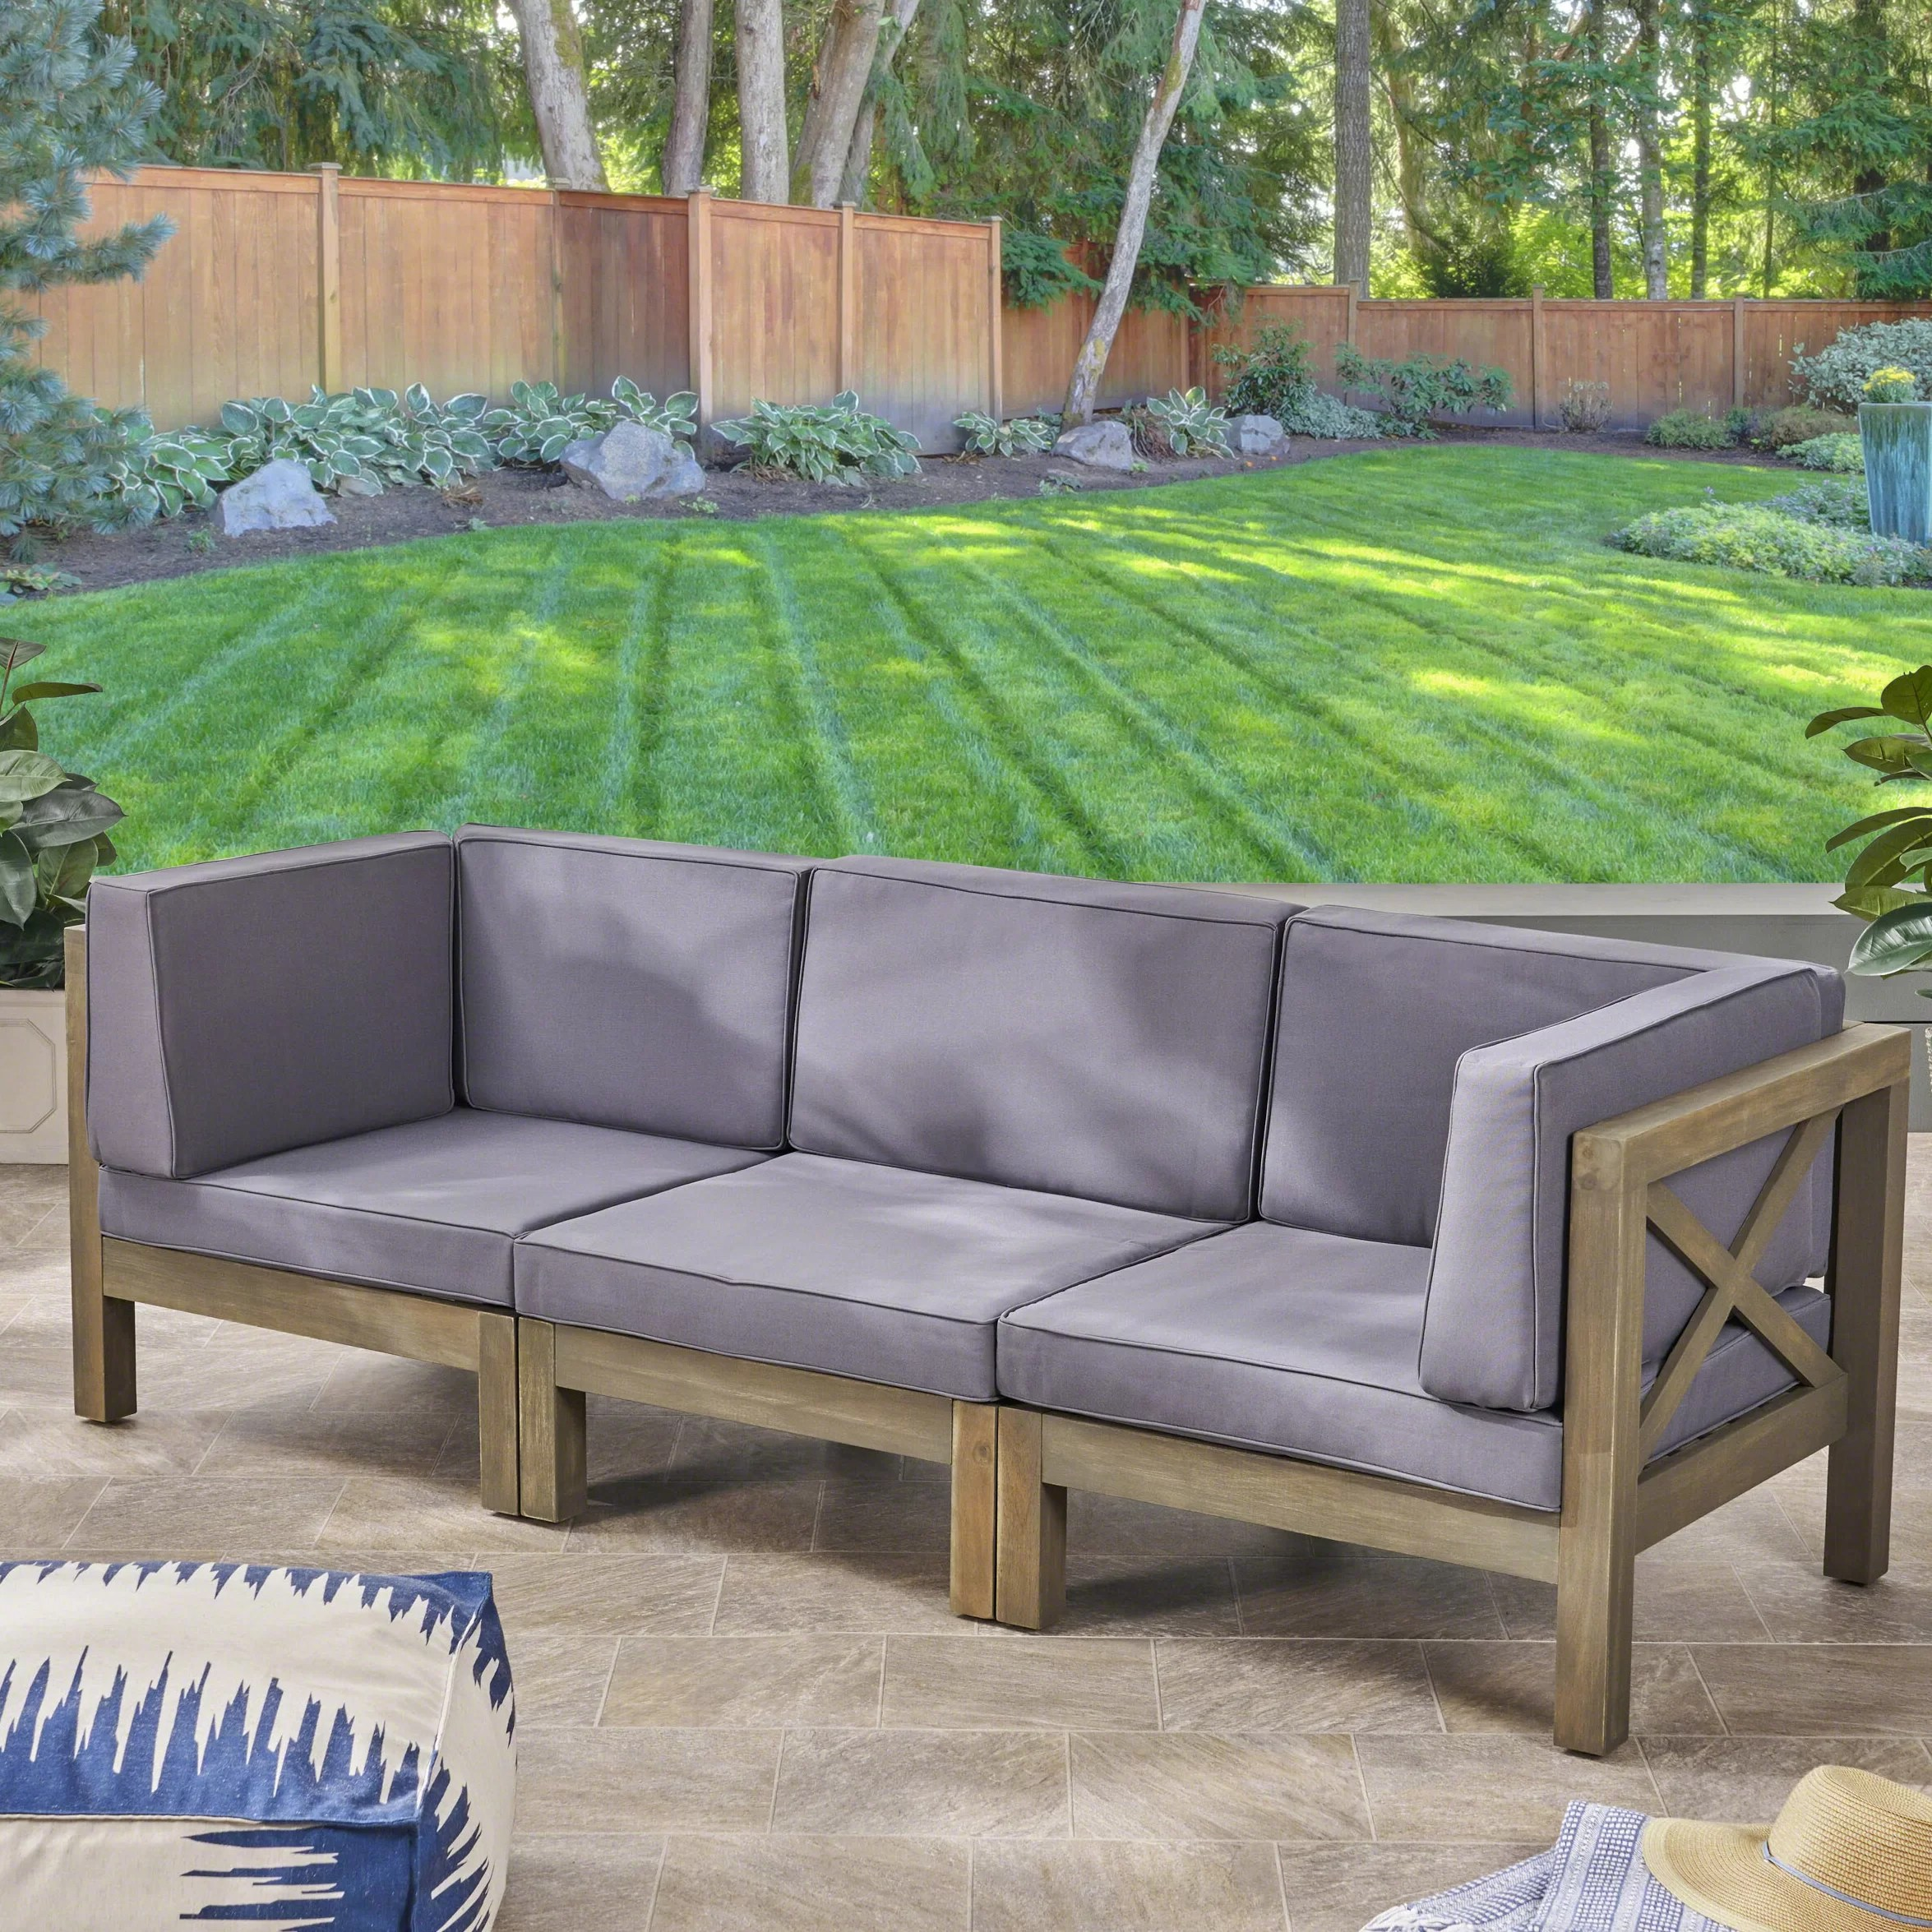 88 5 wide outdoor patio sofa with cushions